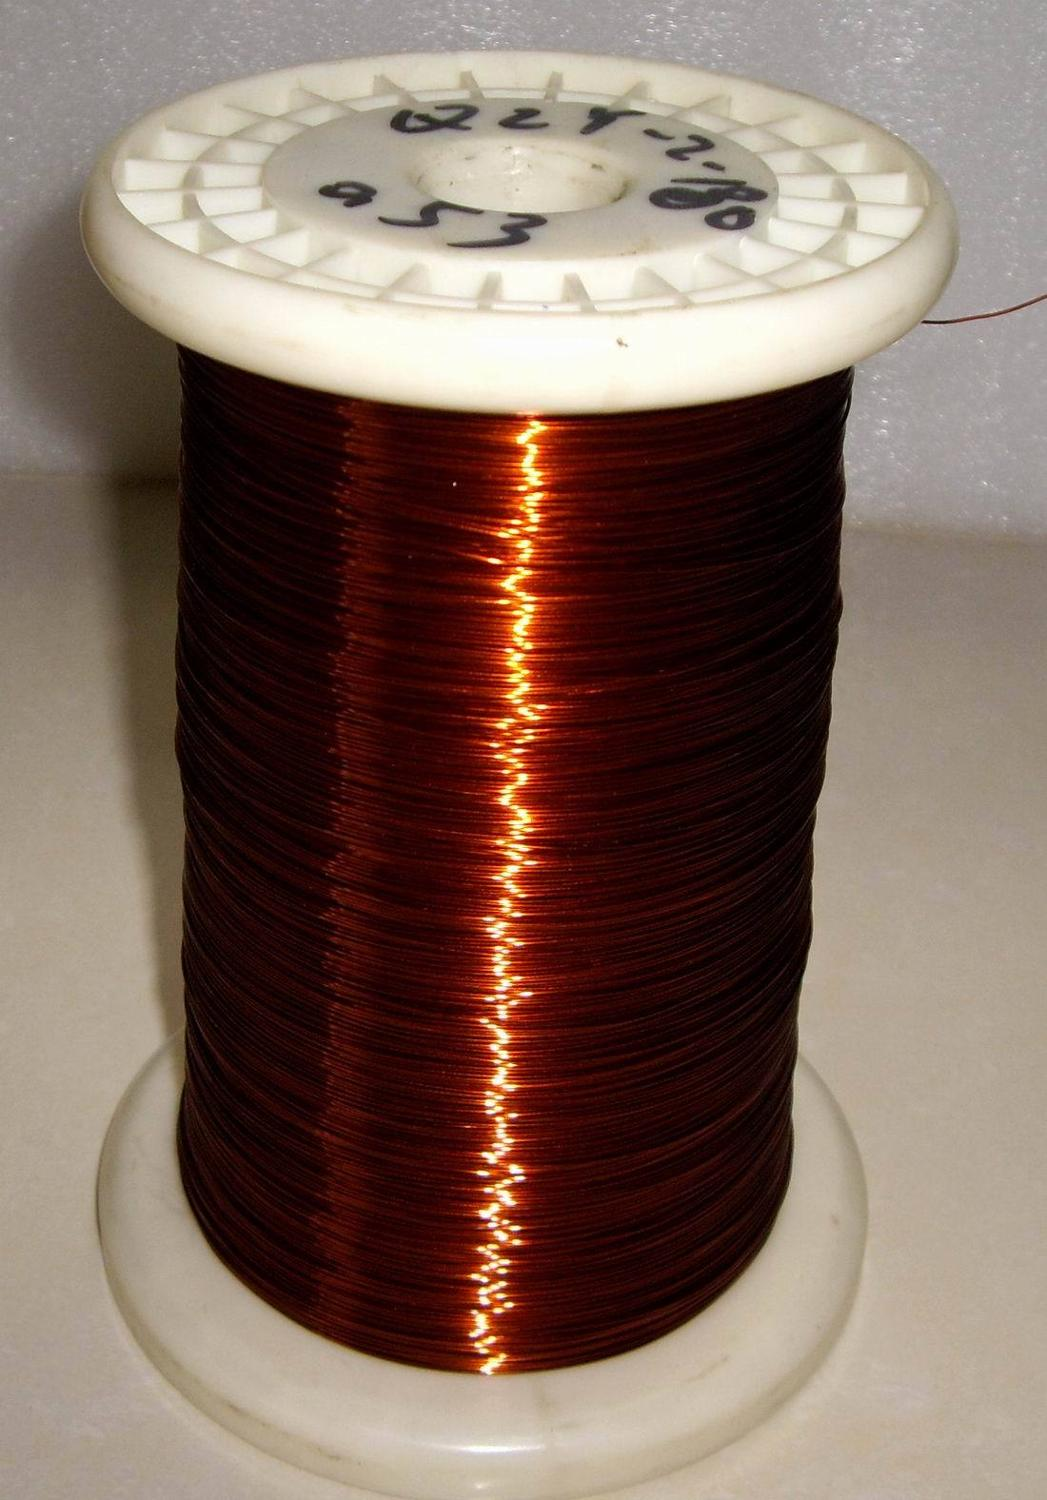 100meters/lot 0.53mm Mm QZY High-temperature Enameled Wire Enamelled Round Copper Wire, QZY-2-180 Temperature Of 180 Degrees Cel